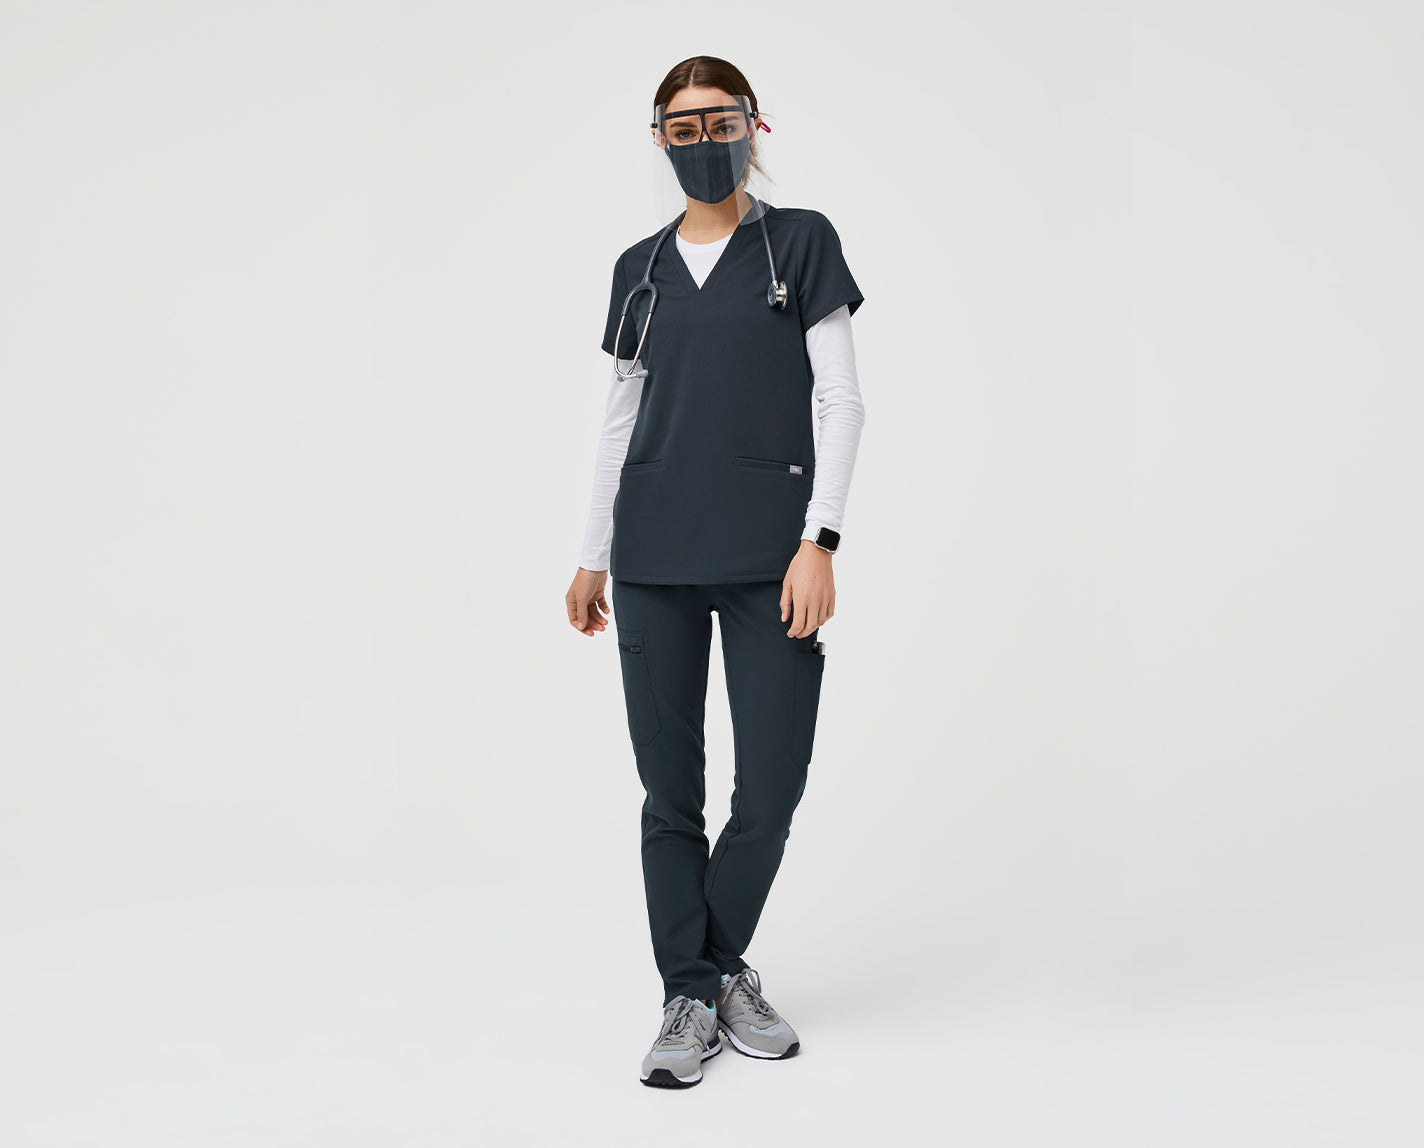 Mask up. Our Woven Adjustable Mask features our FIONx fabric with SuperSoft lining, a bendable nose wire for extra comfort, a slot for replaceable filters and soft elastic ear loops for all day comfort. Plus, it's machine washable.